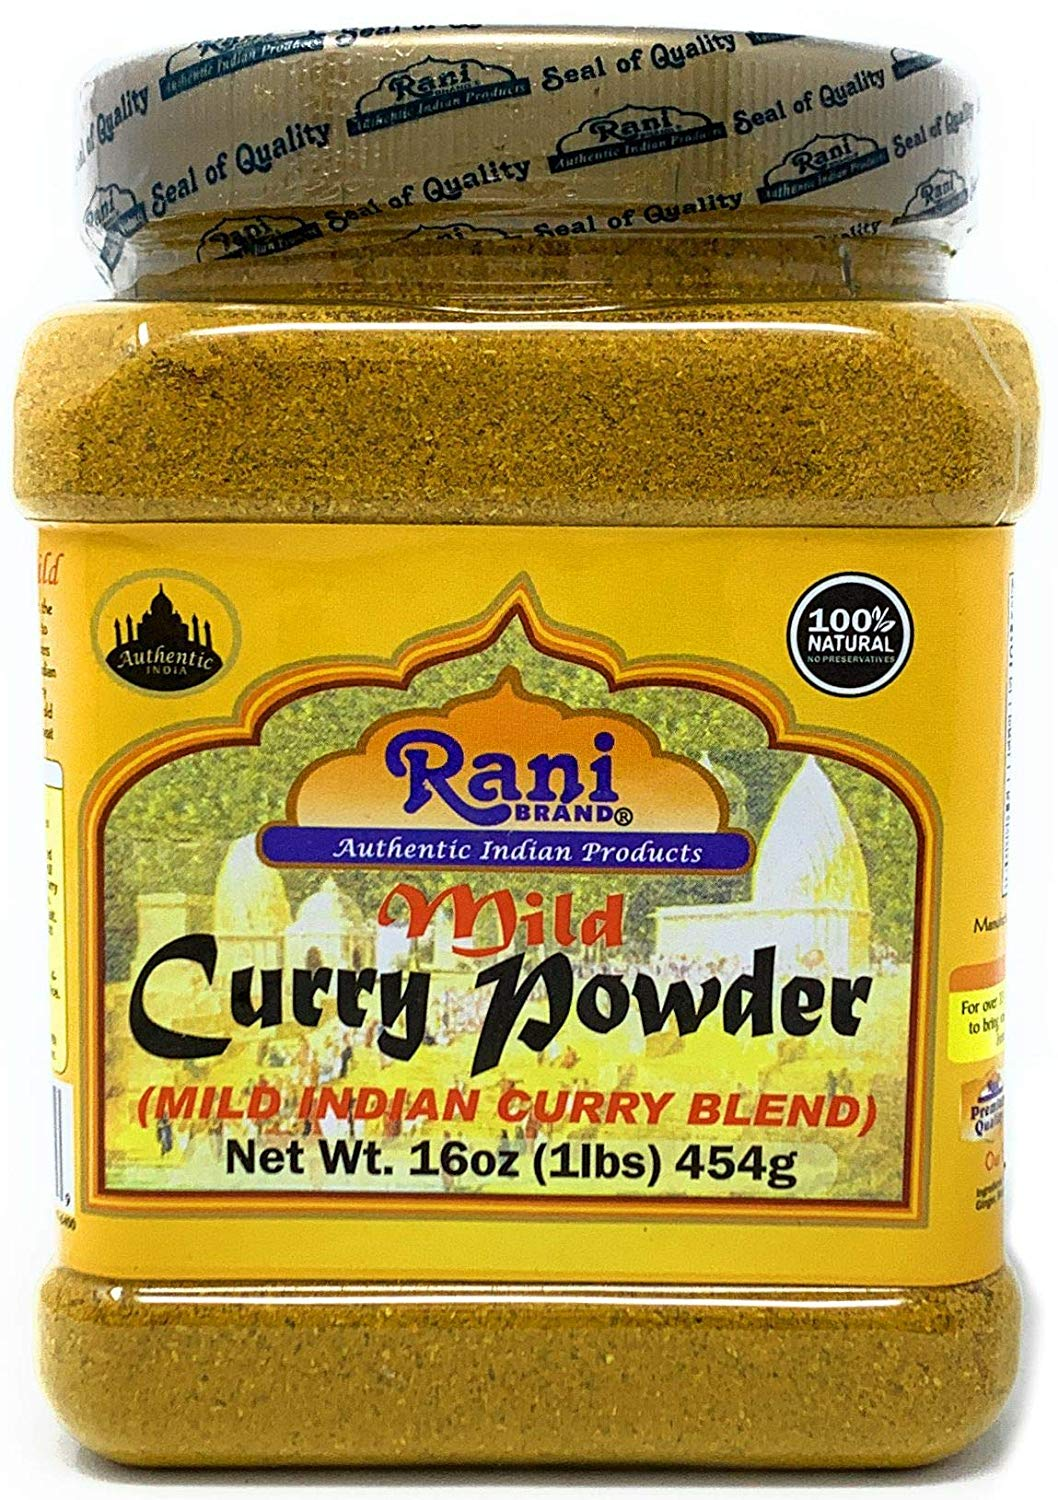 rani authentic curry powder